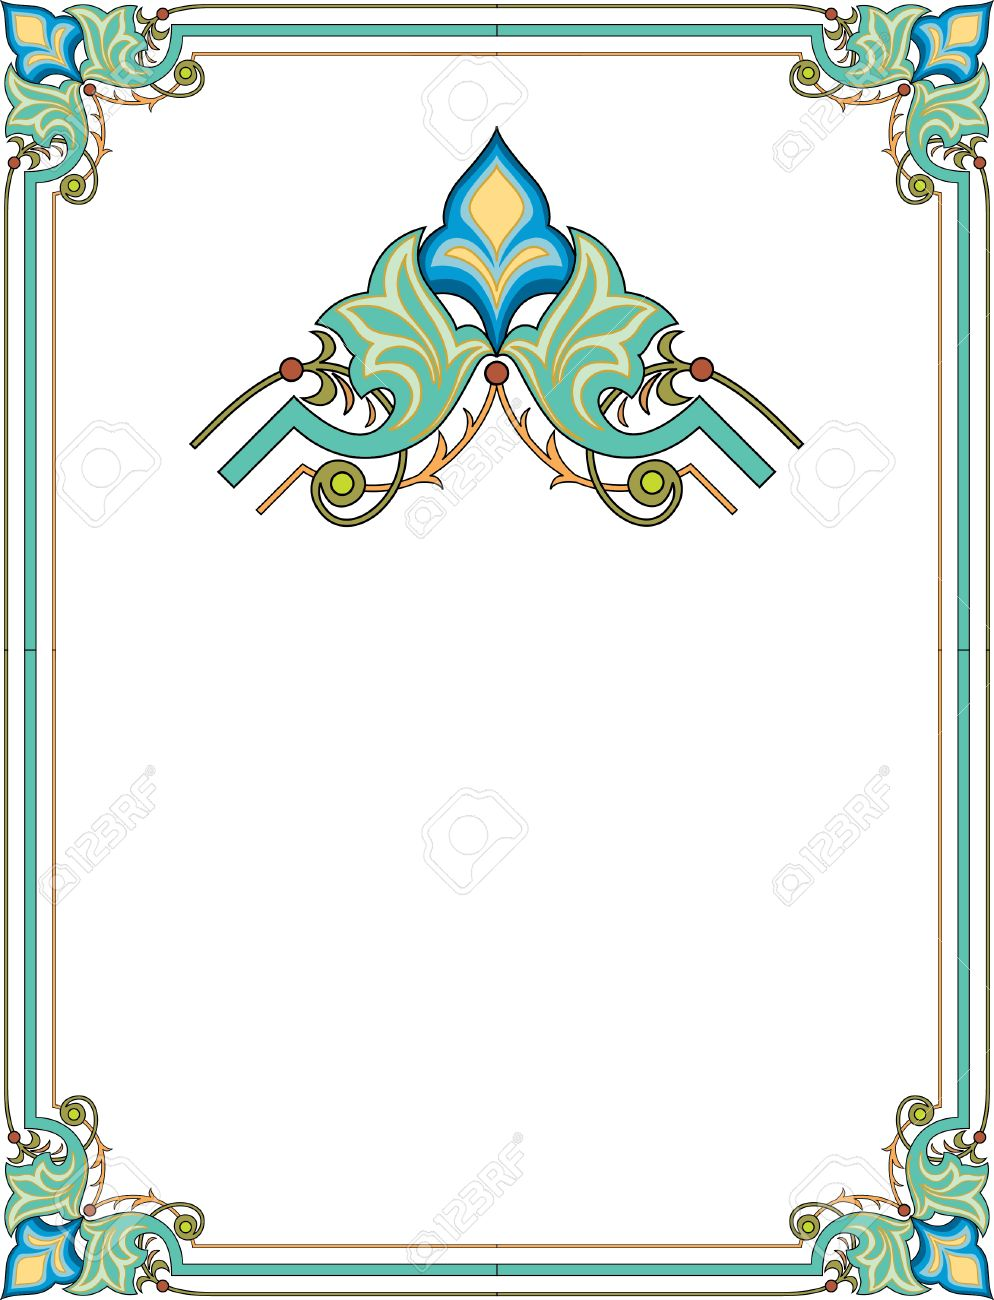 Simple outline frame with corners Stock Vector - 23445804